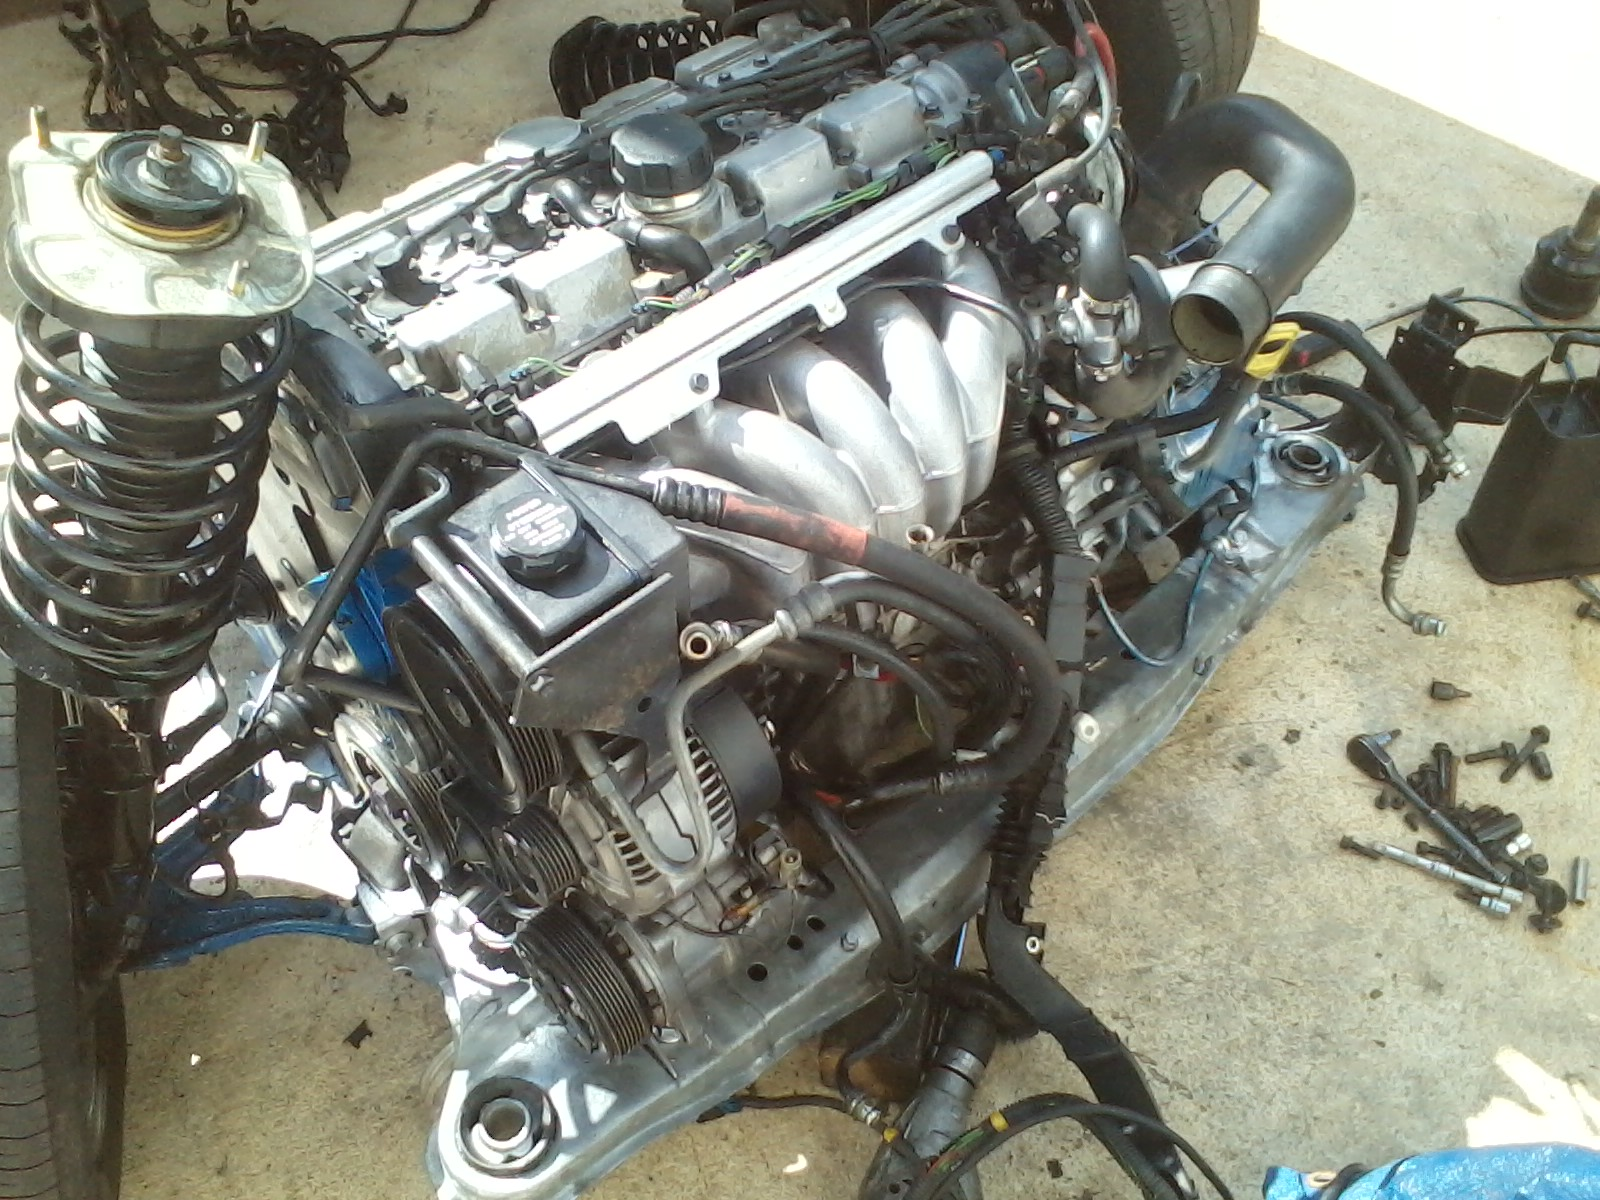 1997 850 glt engine swap wth b5254t 2 4l lpt from 1998 v70